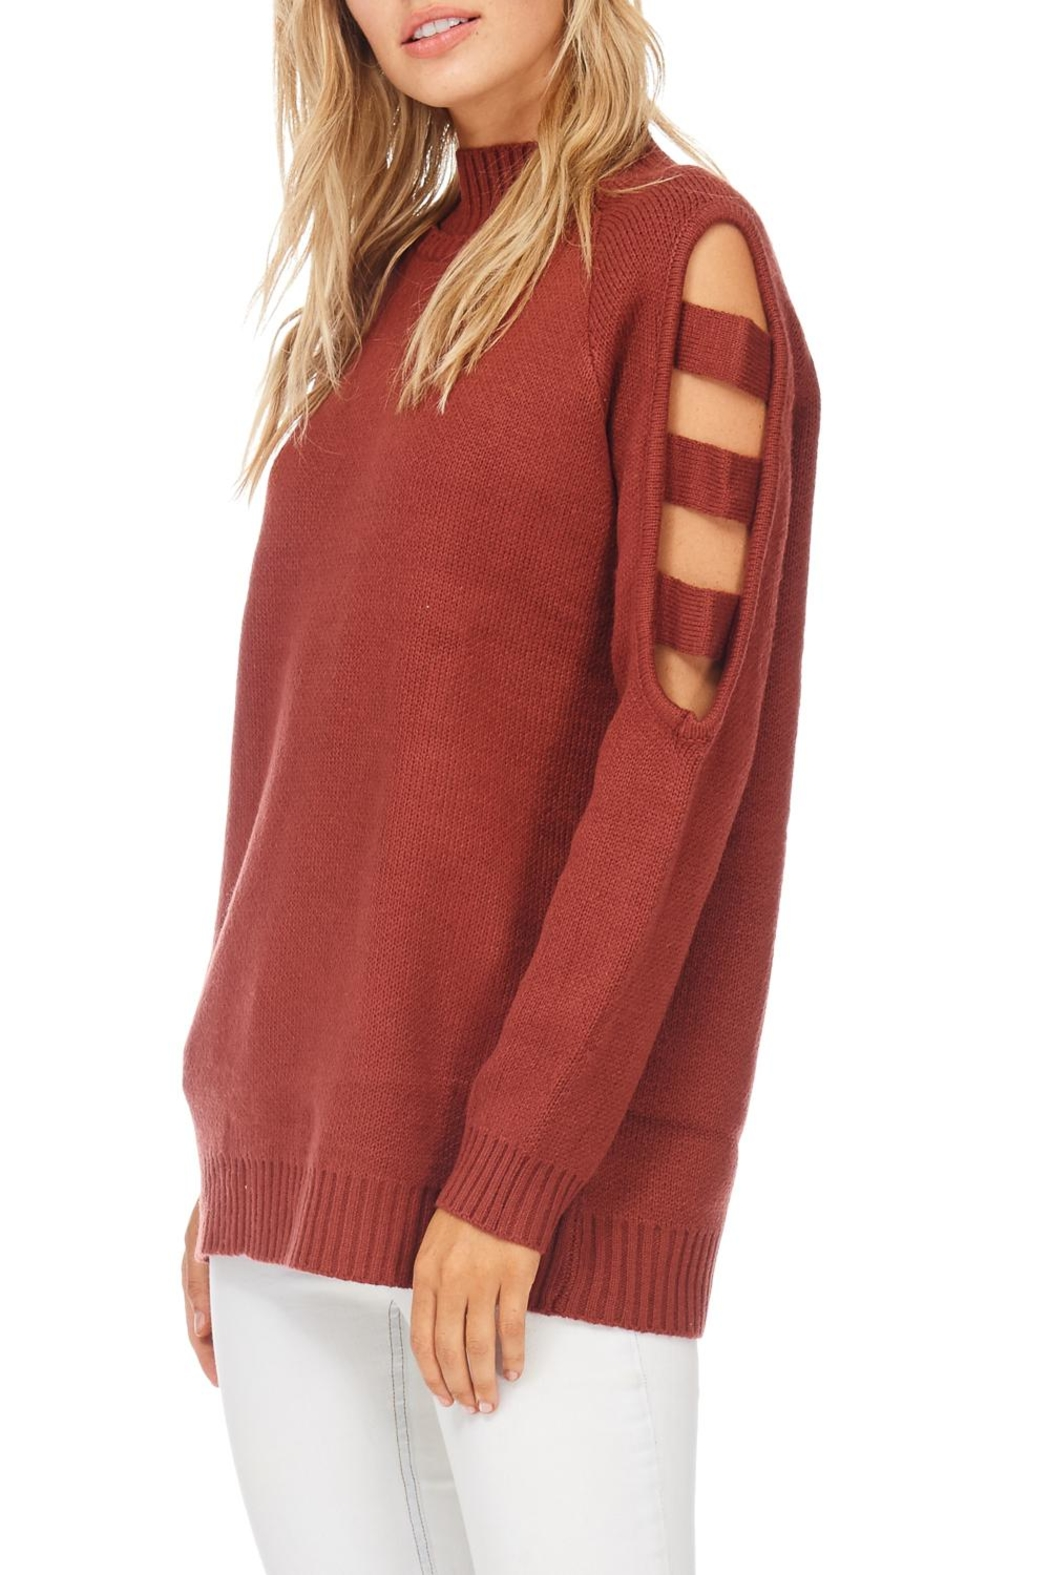 LoveRiche Solid Open Sleeve Sweater - Side Cropped Image